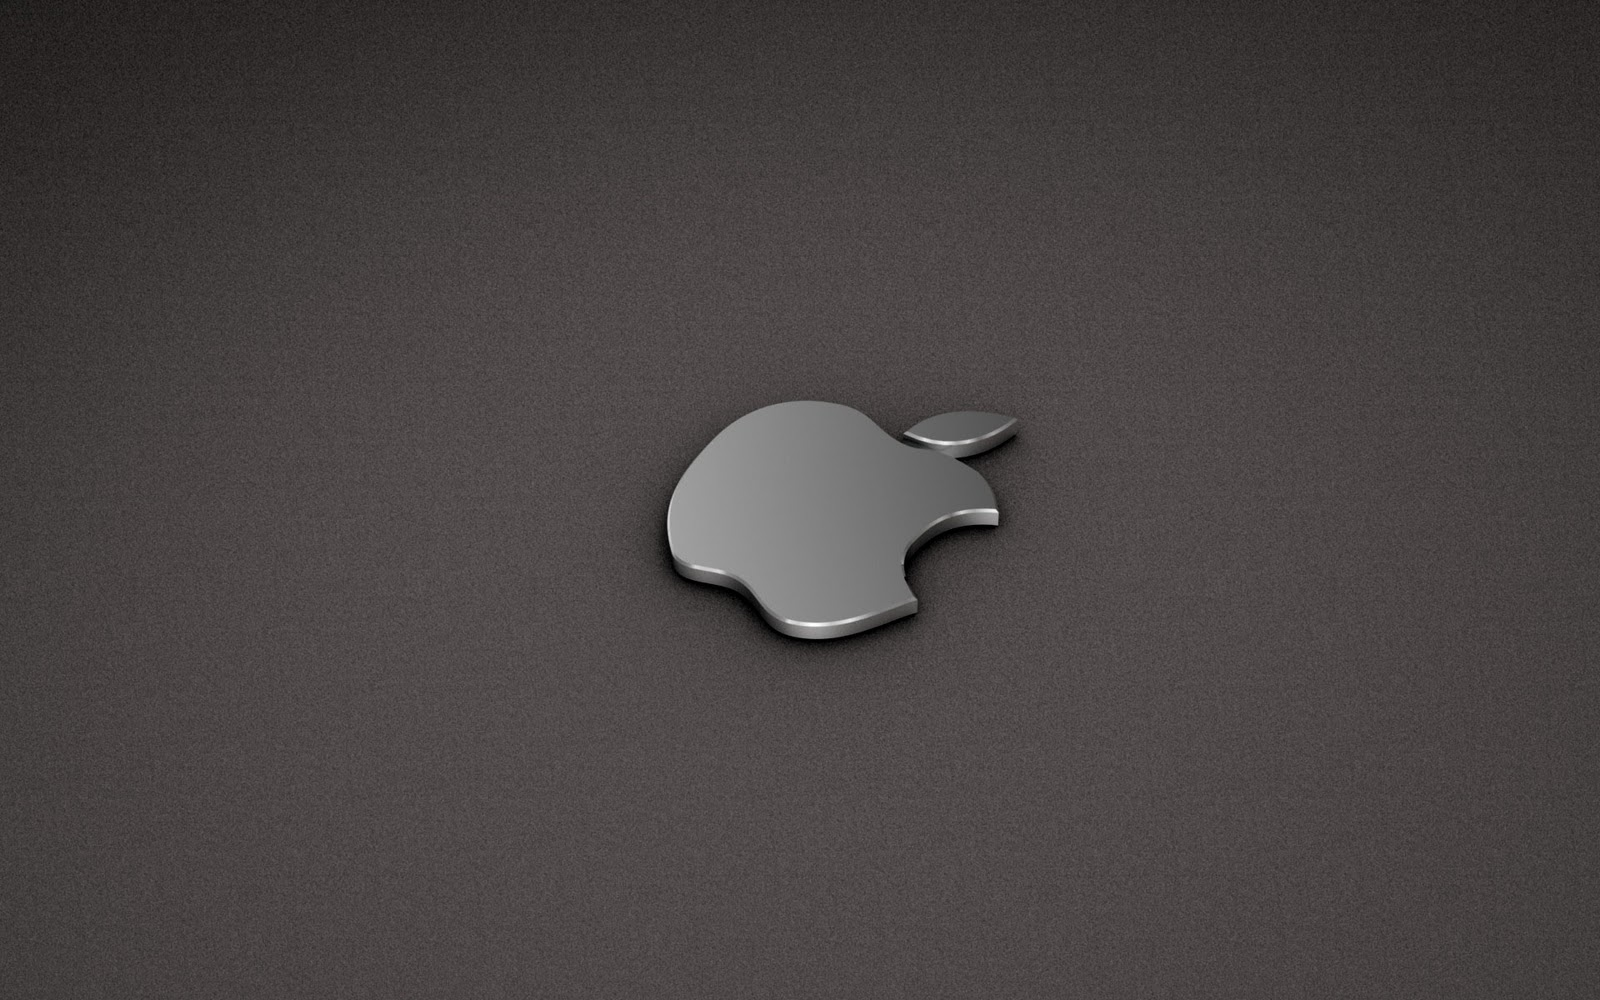 Breakup Hd Wallpapers With Quotes Simple And Beautiful Apple Theme Wallpapers For Mac Laptop